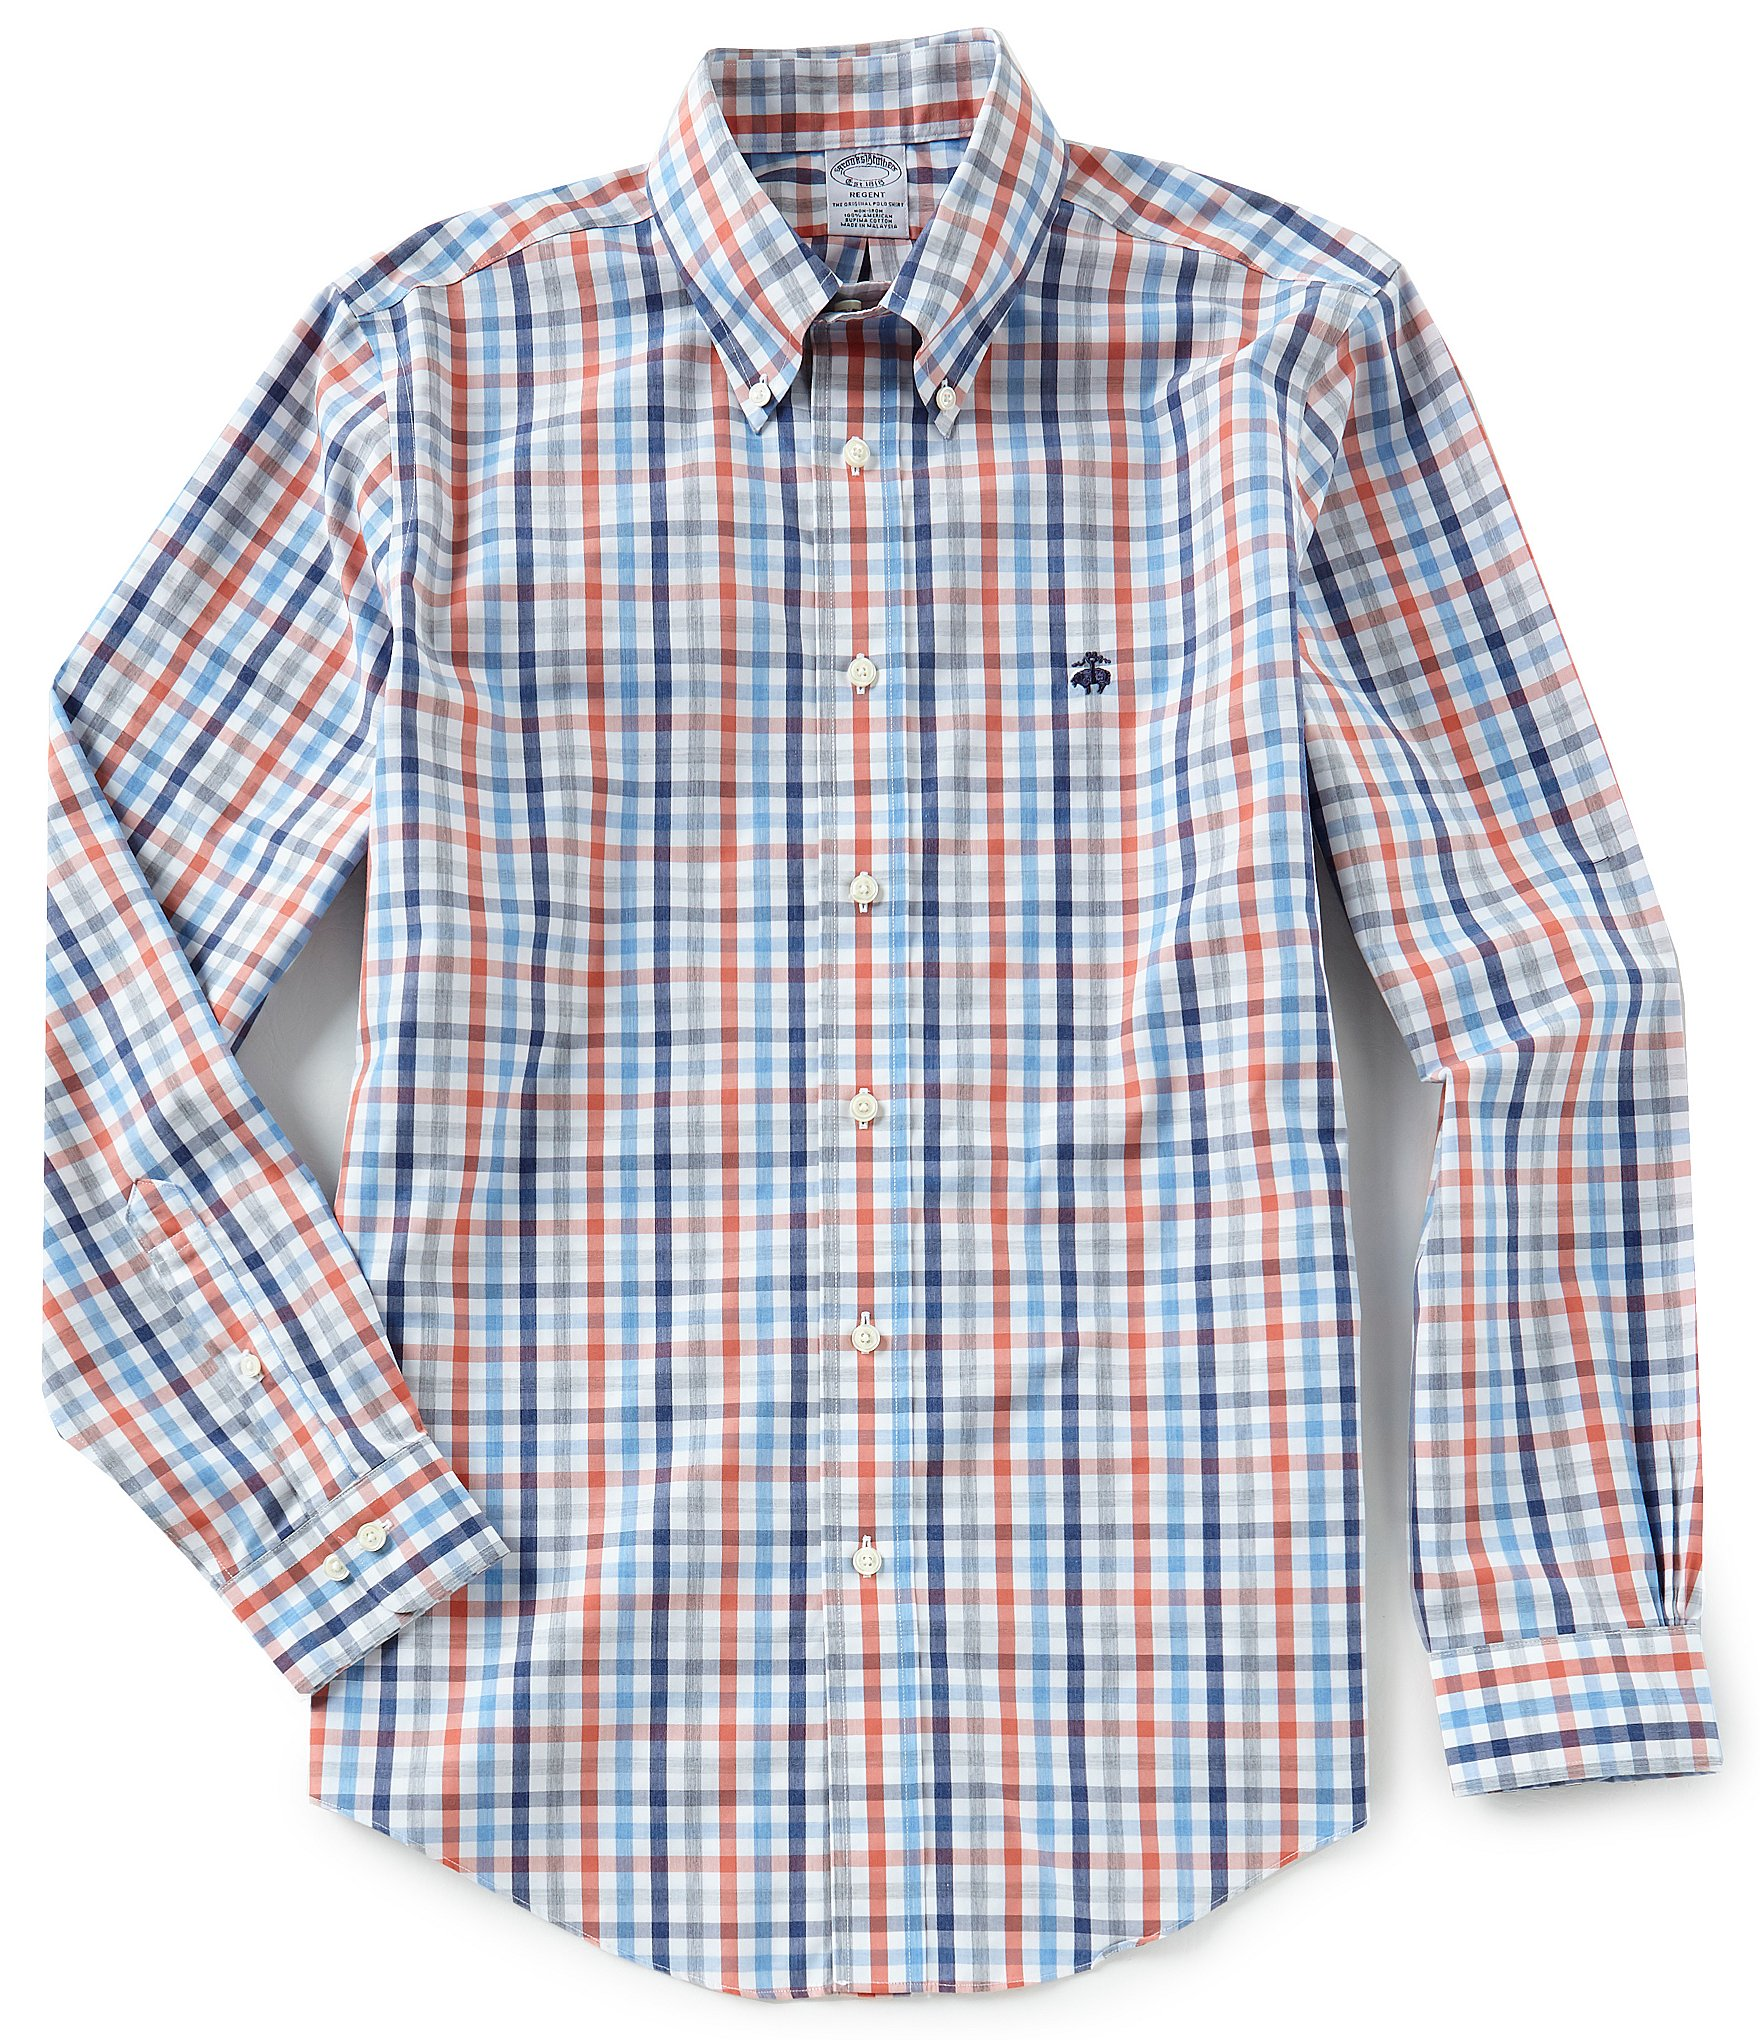 Brooks brothers non iron gingham regent fit yarn dye long for Brooks brothers non iron shirt review